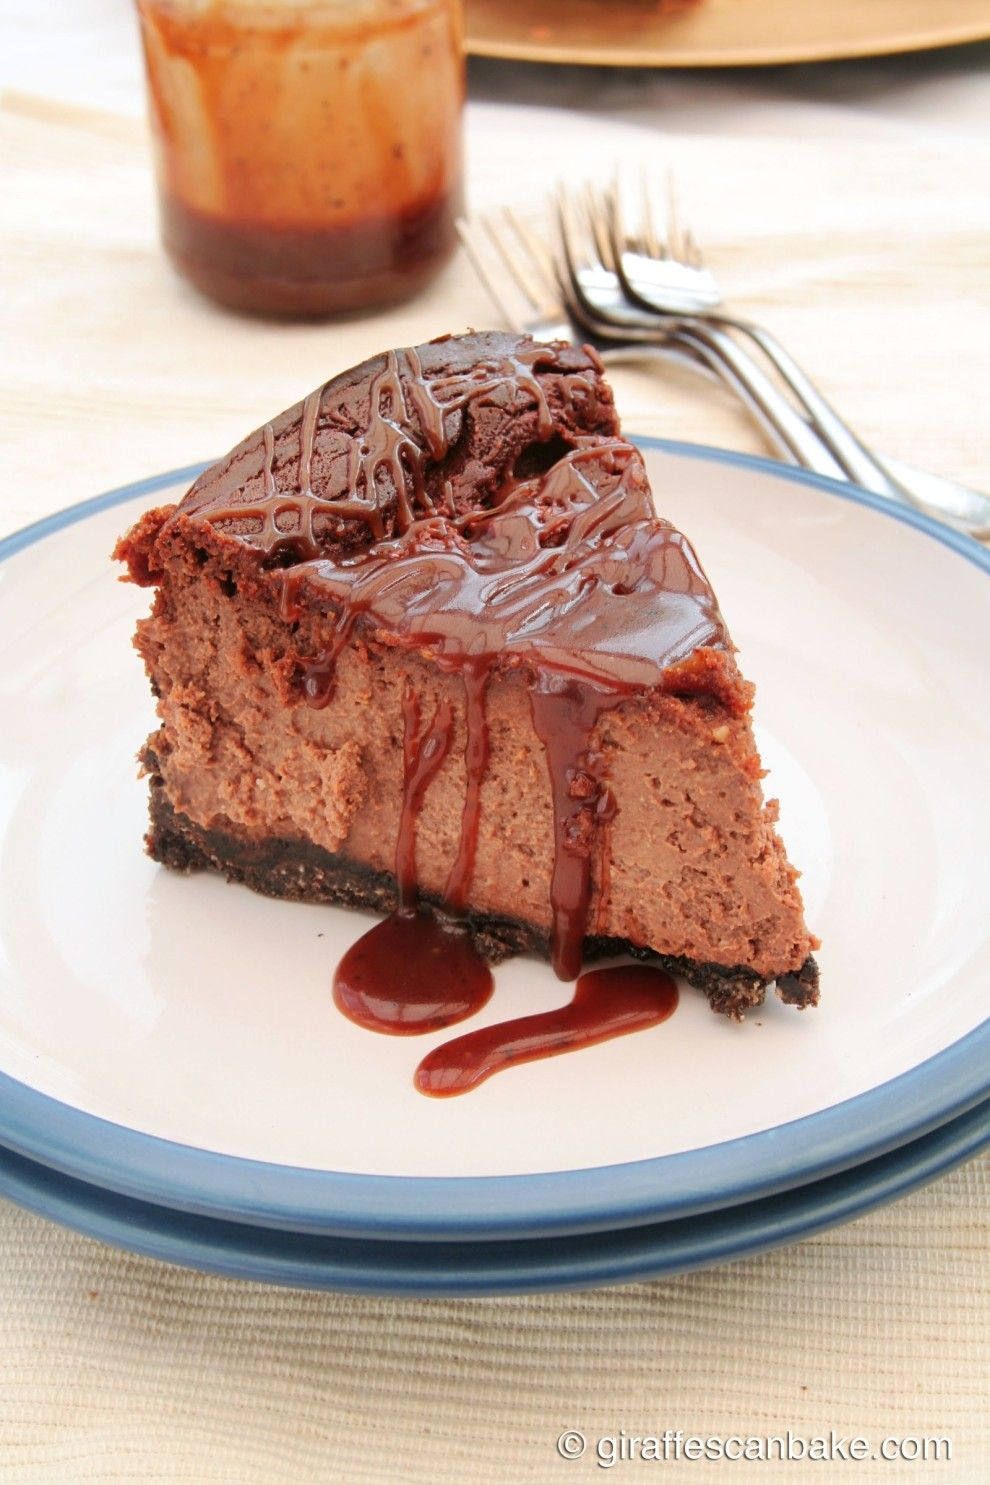 12%20Next-Level%20Cheesecakes%20You%20Should%20Try%20In%20This%20Lifetime